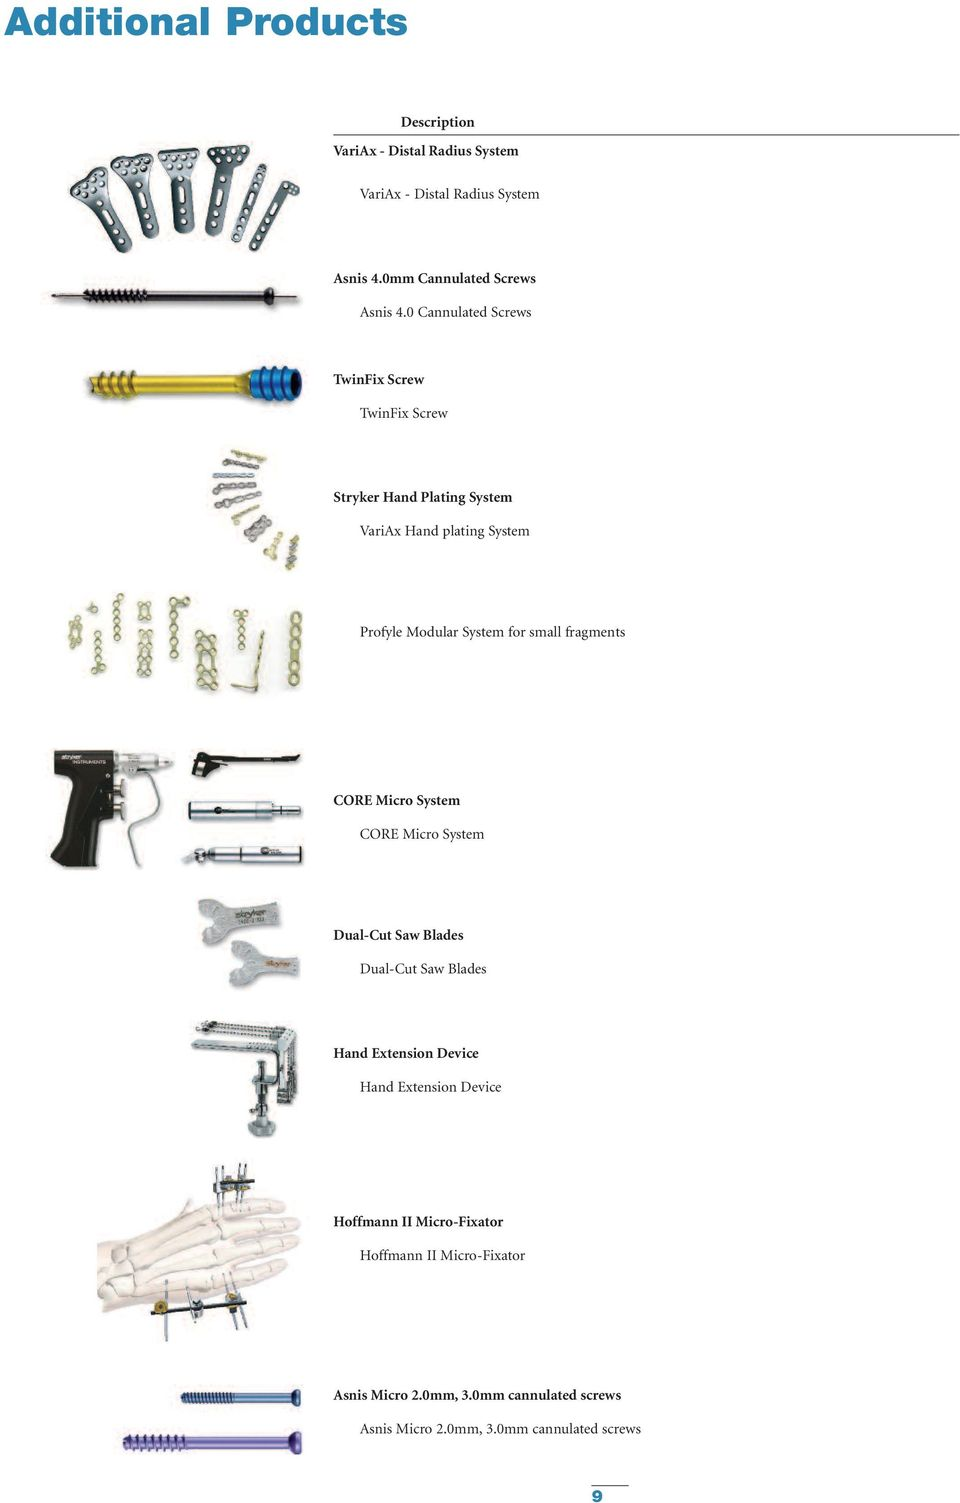 small fragments CORE Micro System CORE Micro System Dual-Cut Saw Blades Dual-Cut Saw Blades Hand Extension Device Hand Extension